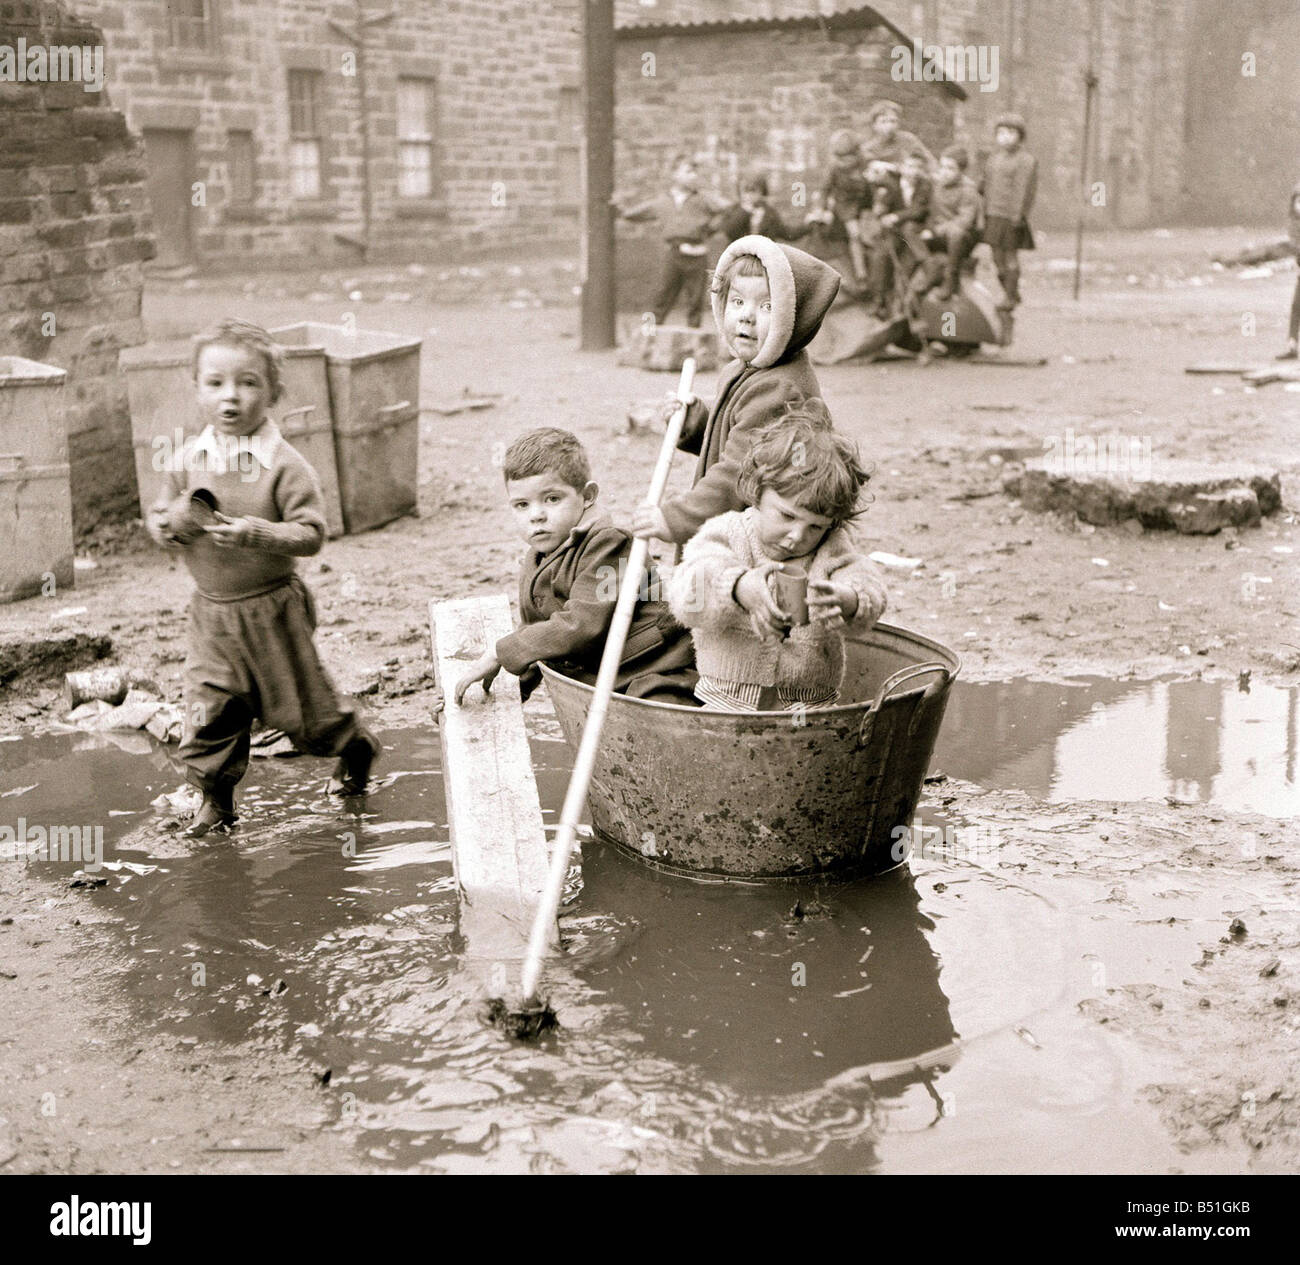 Housing slums in the Gorbals district of Glasgow where children use any materials to hand an old bath tub for a Stock Photo